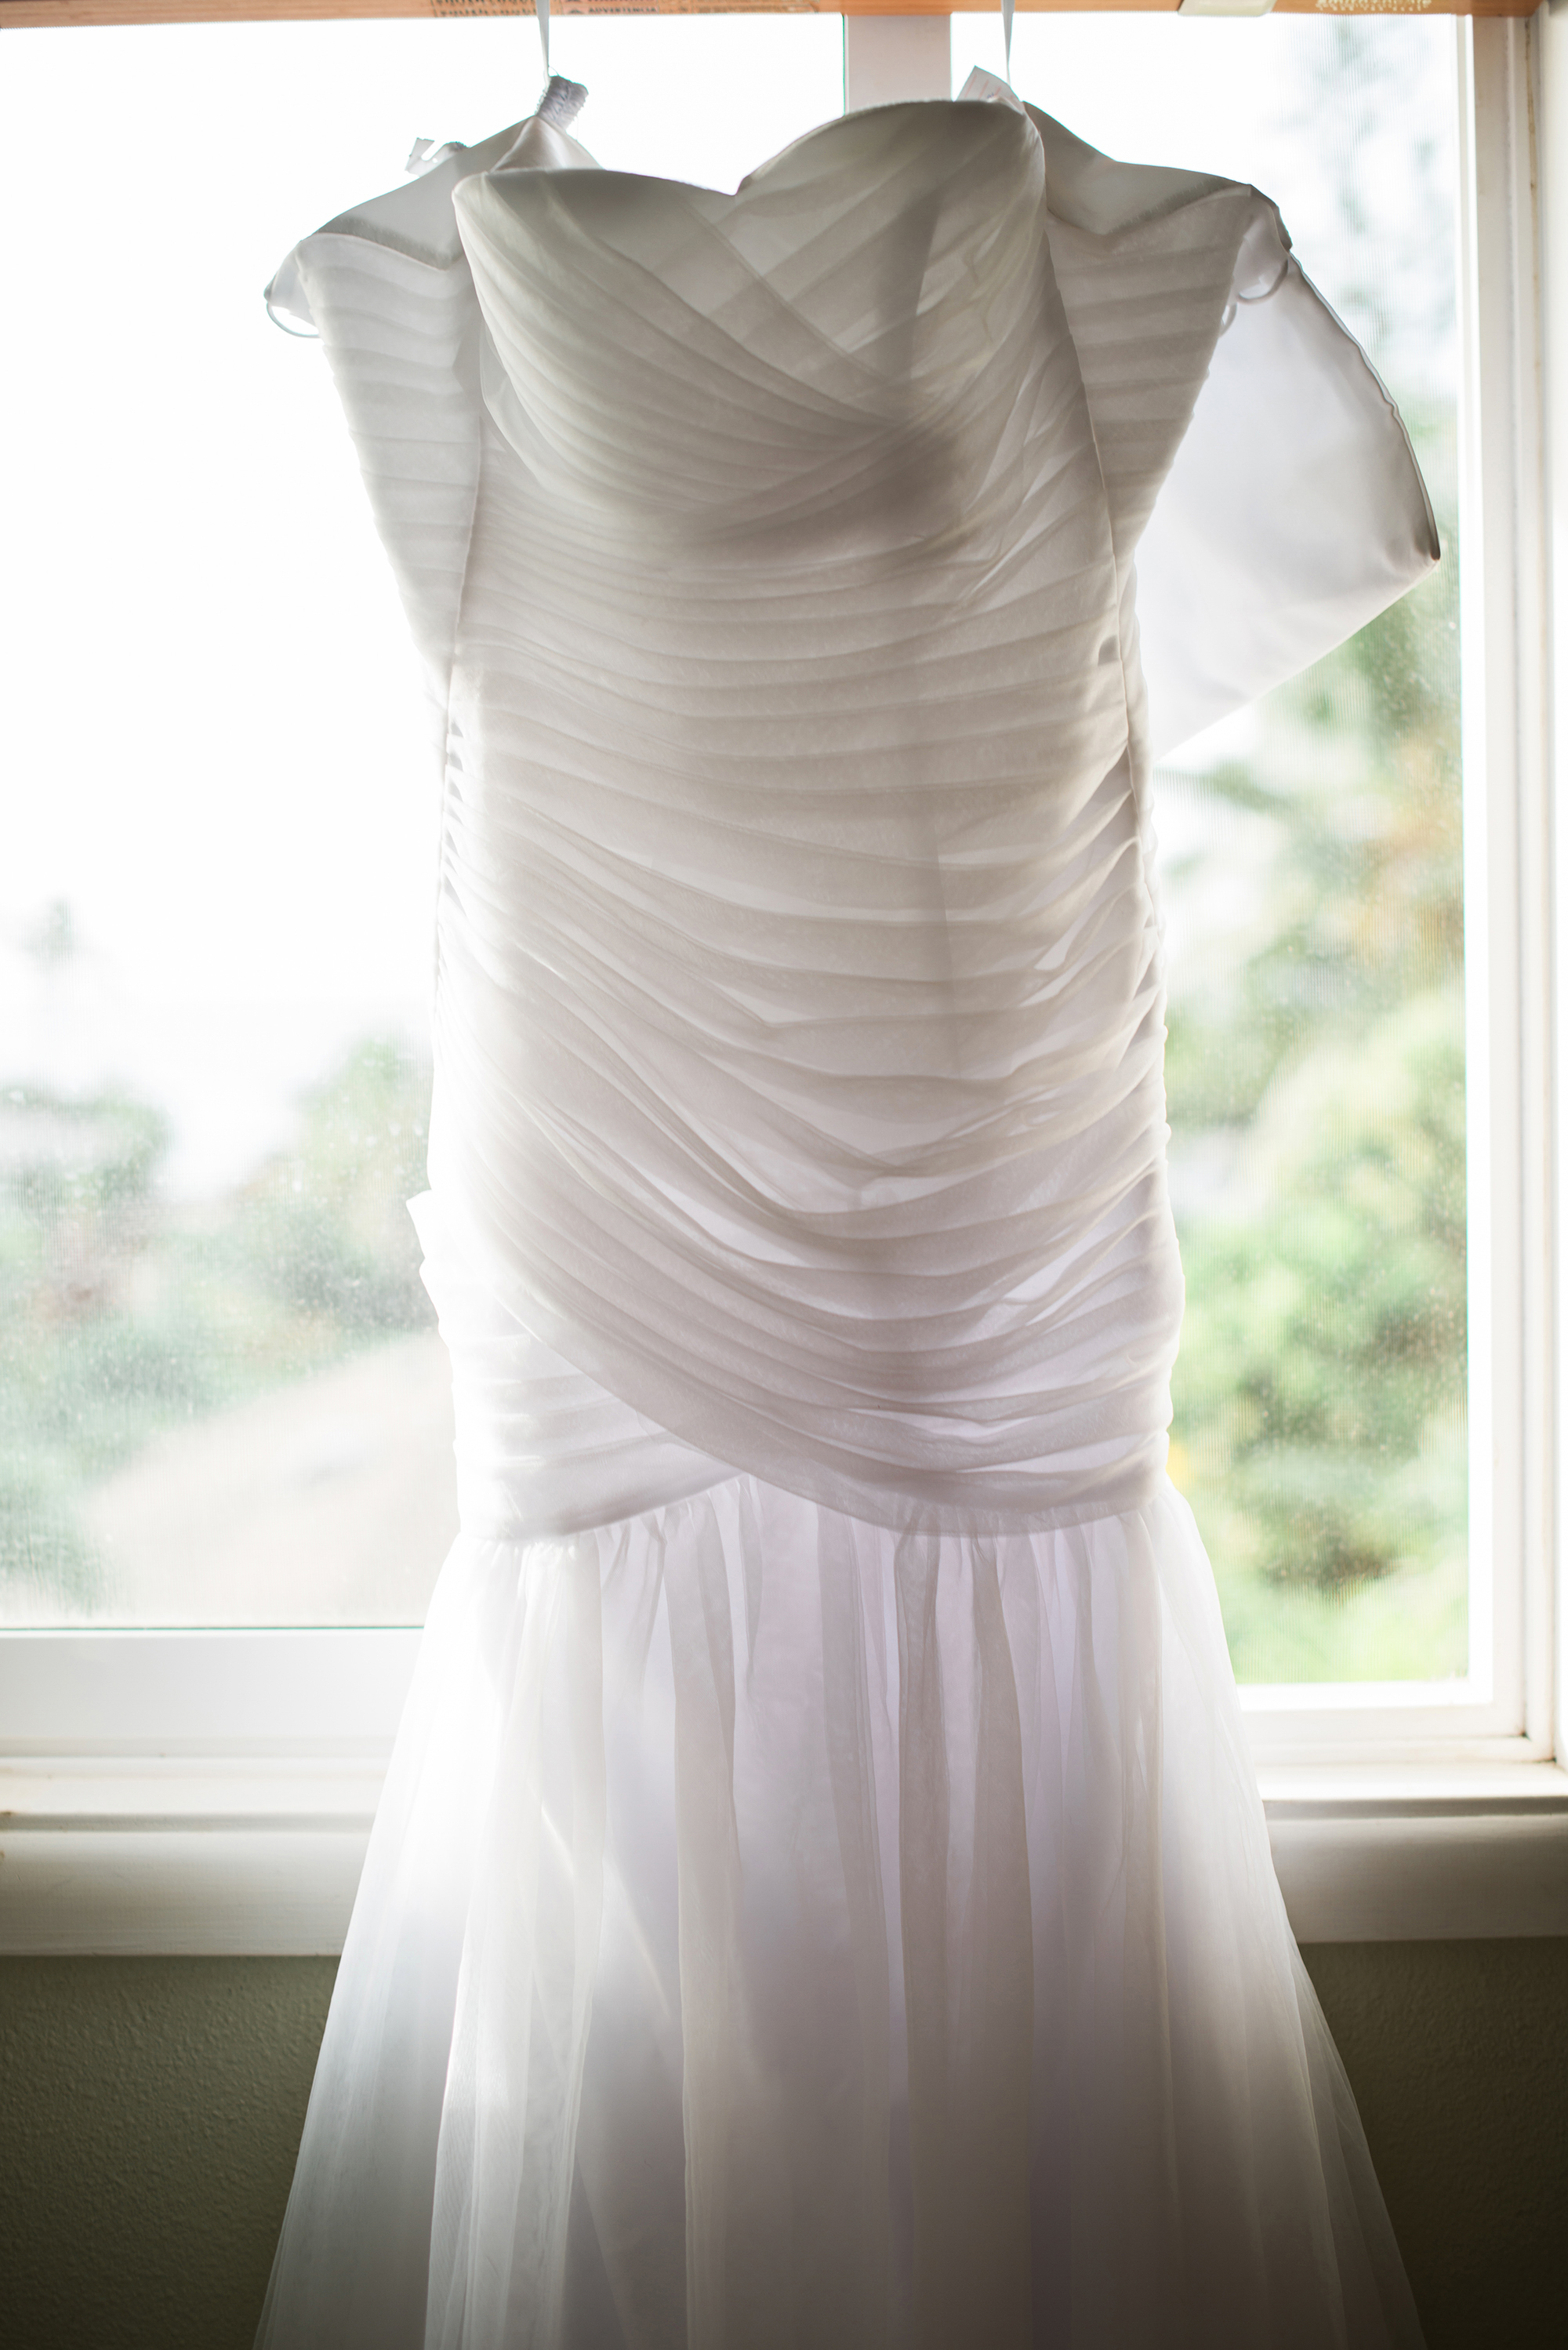 Wedding Dress Photo with light reflecting off the pleating / by Marianne Blackham Photography - a Washington DC based natural light wedding photographer / as seen on www.BrendasWeddingBlog.com